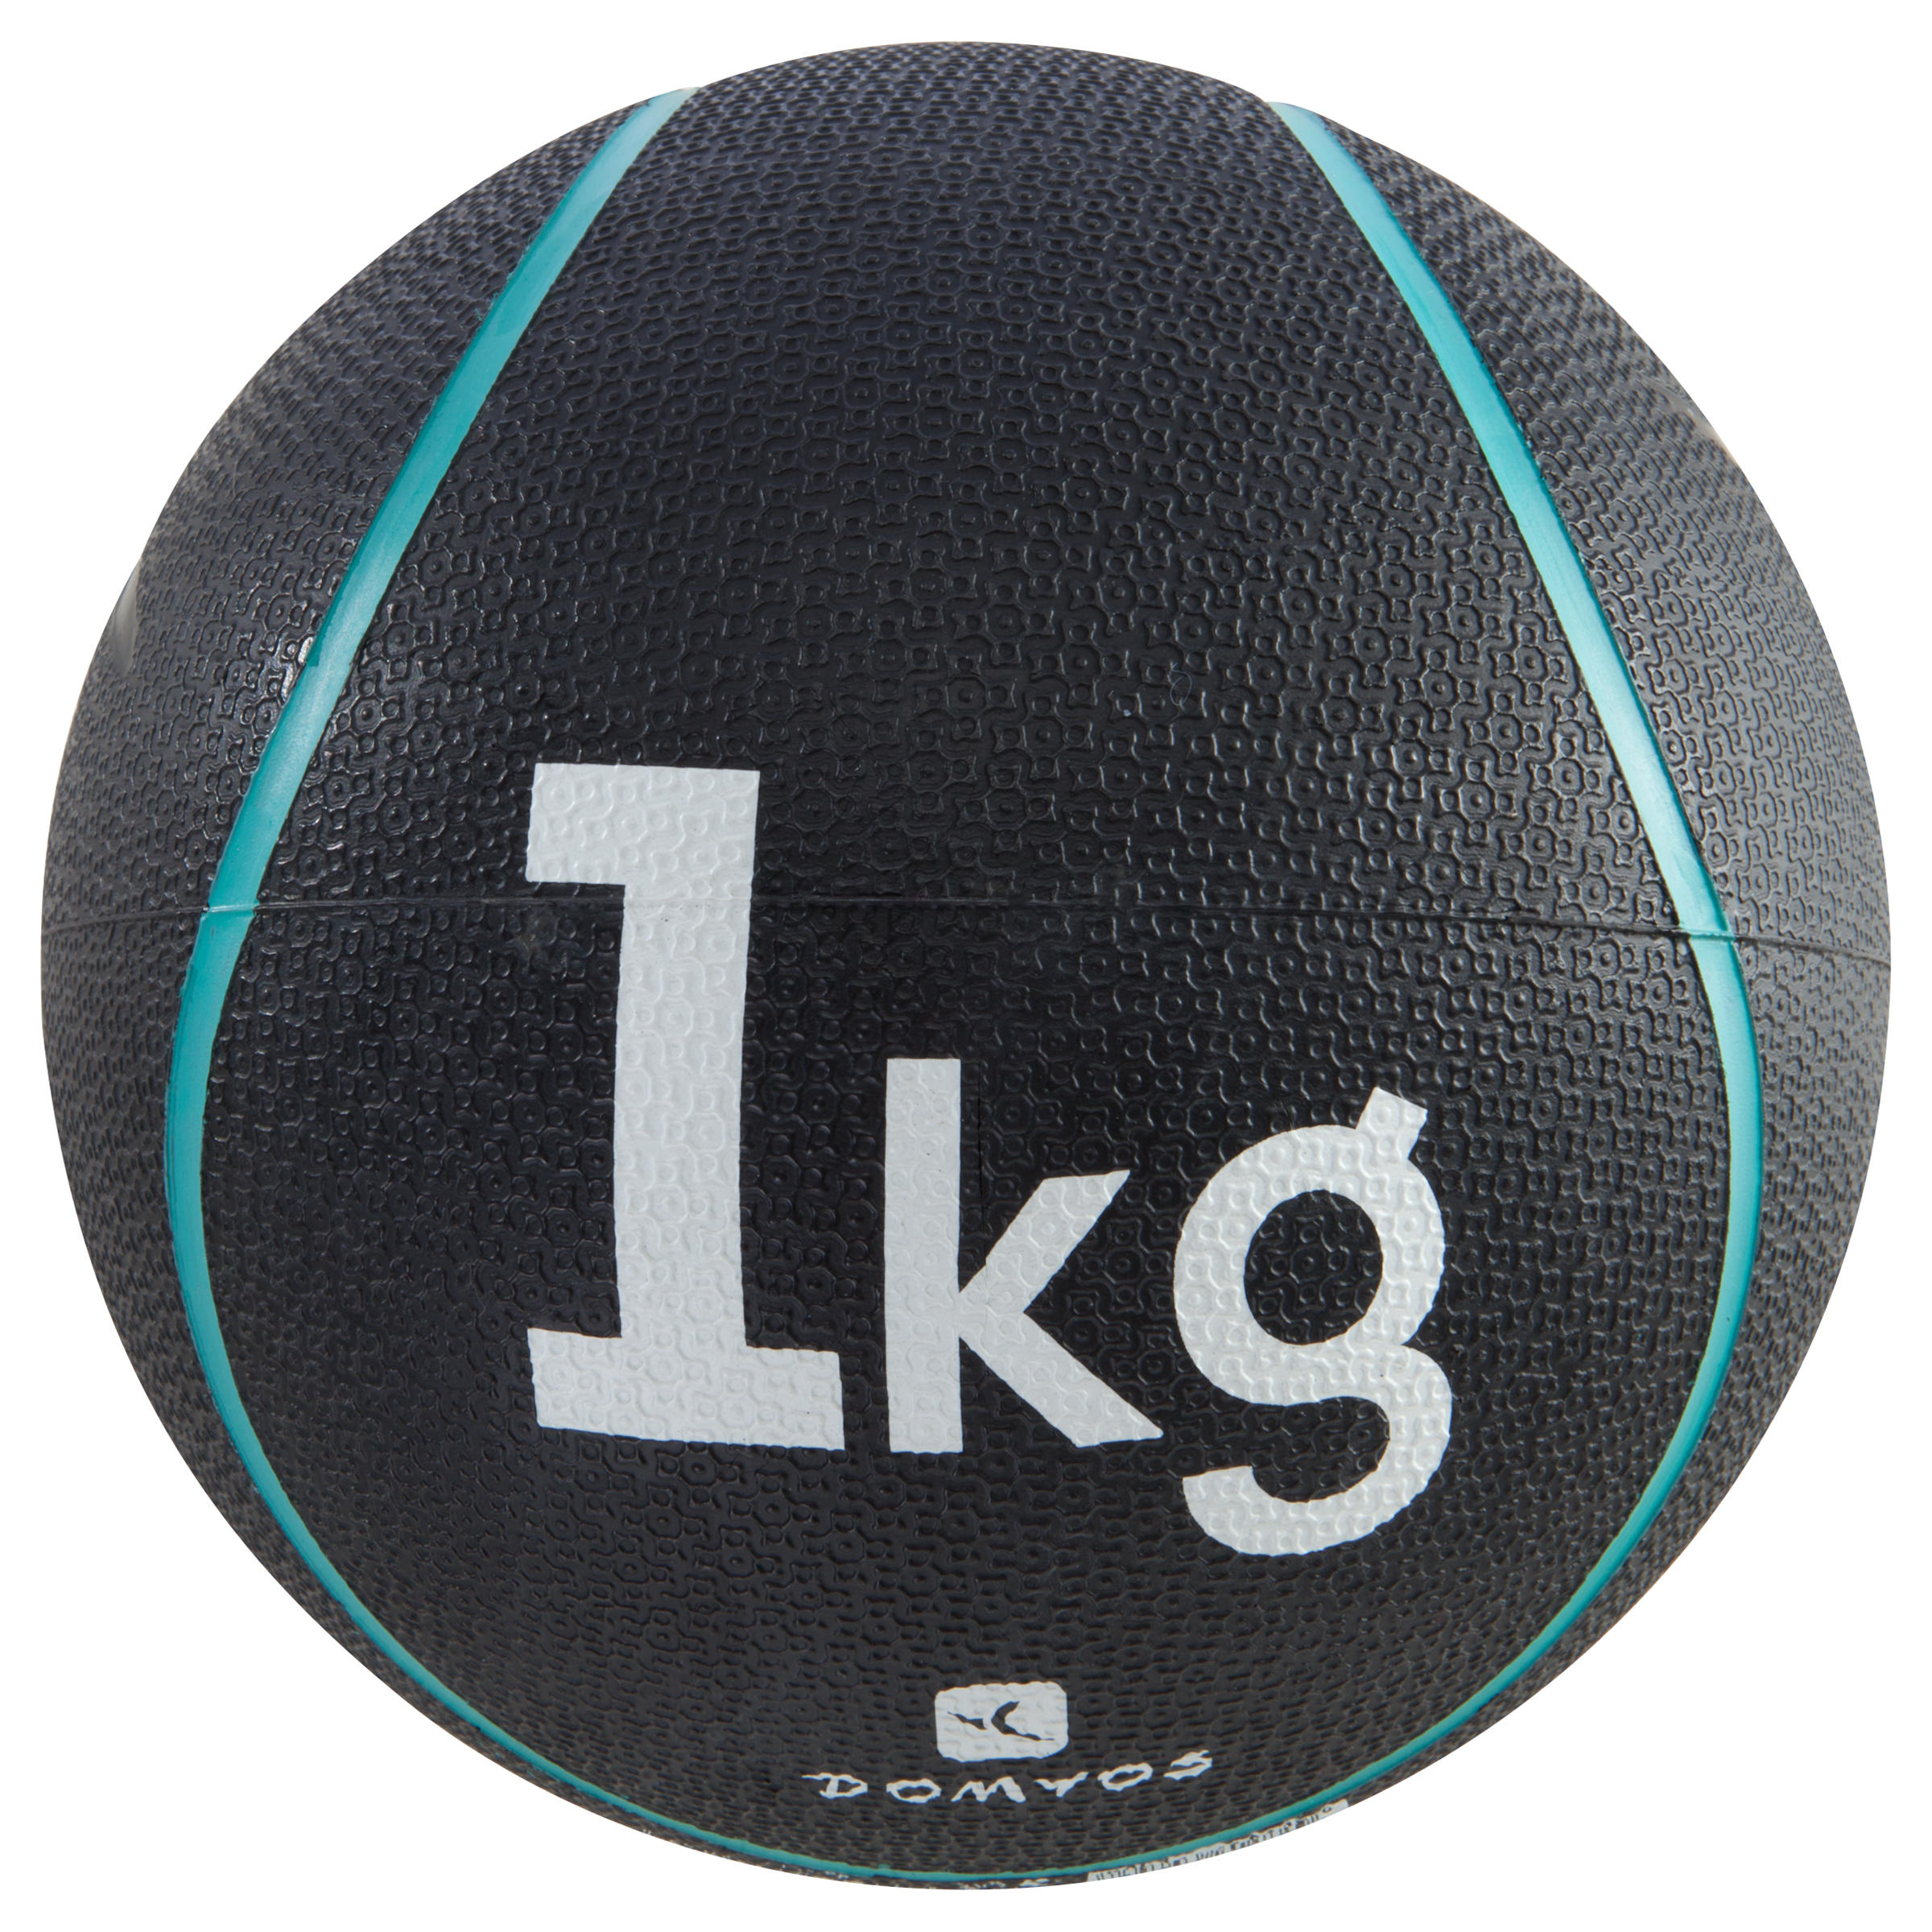 Pilates Toning Weighted Medicine Ball 1 kg